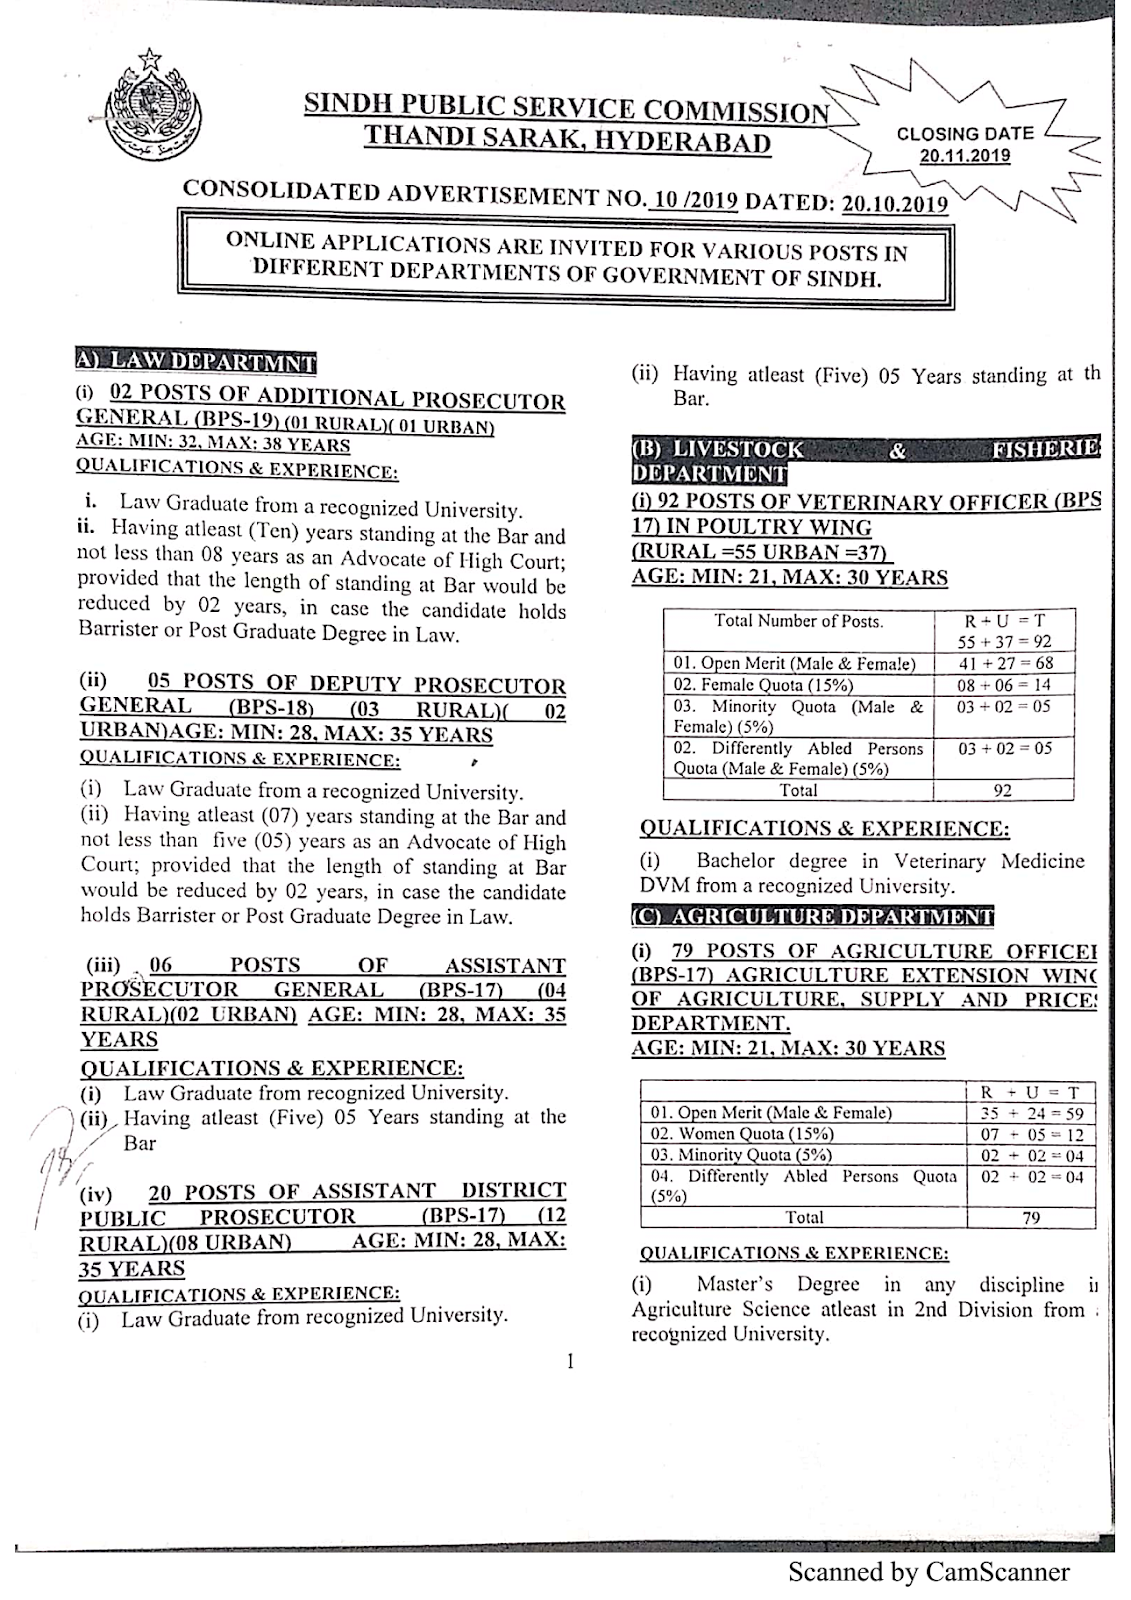 SPSC – SINDH PUBLIC SERVICE COMMISSION (AD NO. 10/2019) Latest Jobs Advertisement – Apply Online